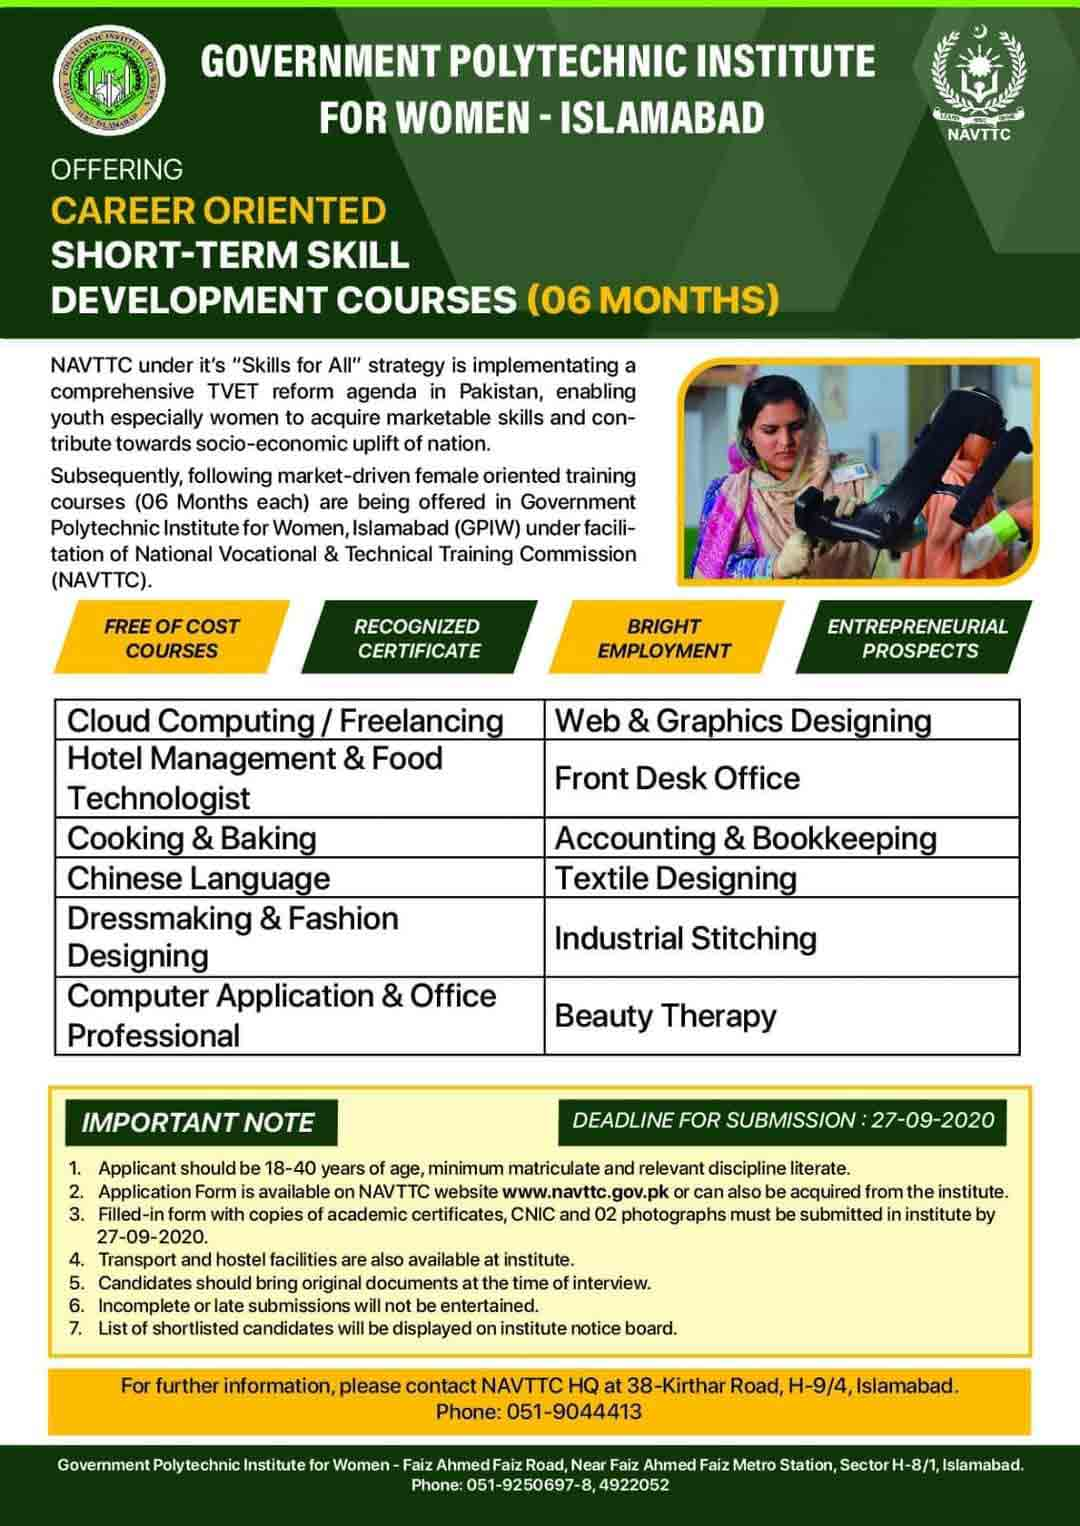 Government-Polytechnic-Institute-for-Women-Islamabad